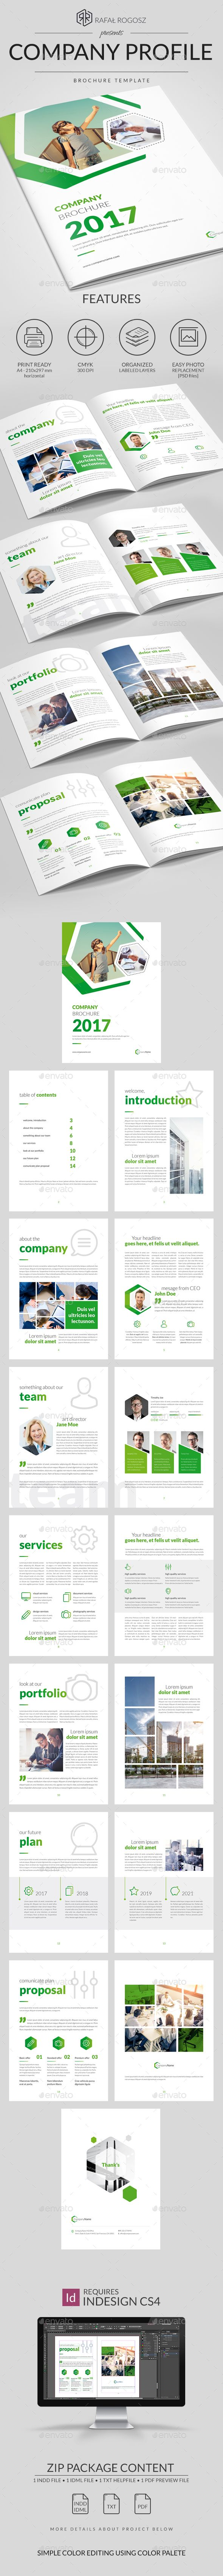 Company Profile brochure 2017 v2 — InDesign INDD #design #template • Download ➝ https://graphicriver.net/item/company-profile-brochure-2017-v2/19888526?ref=pxcr